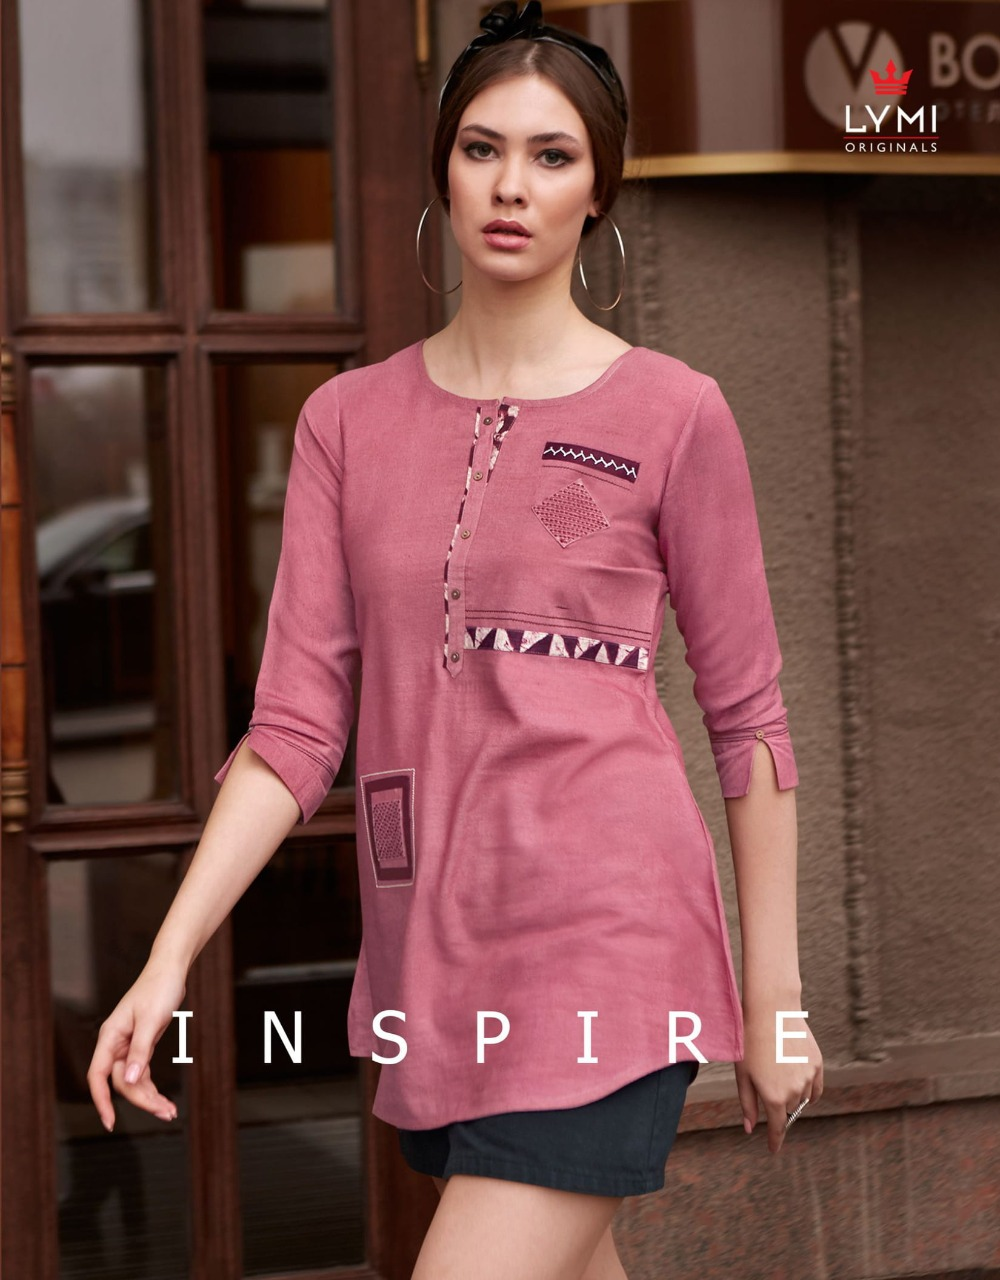 Kessi Lymi Inspire Rayon Flex Cut With Embroidery Work Tops Wholesale